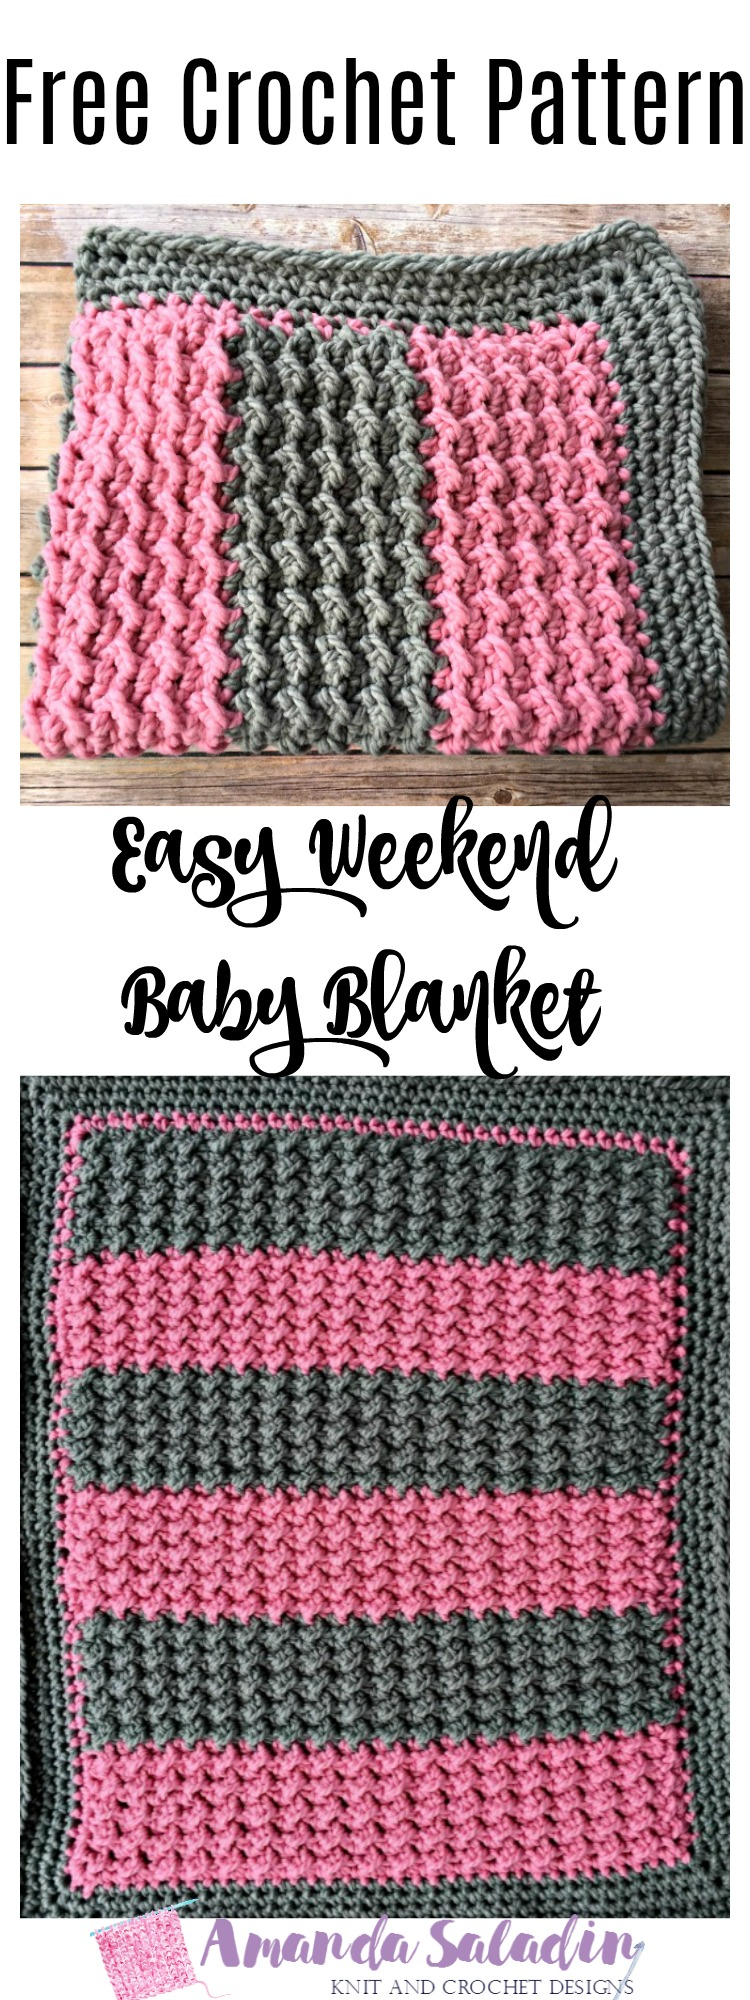 Easy Weekend Baby Blanket - Free Crochet Pattern - Amanda Saladin